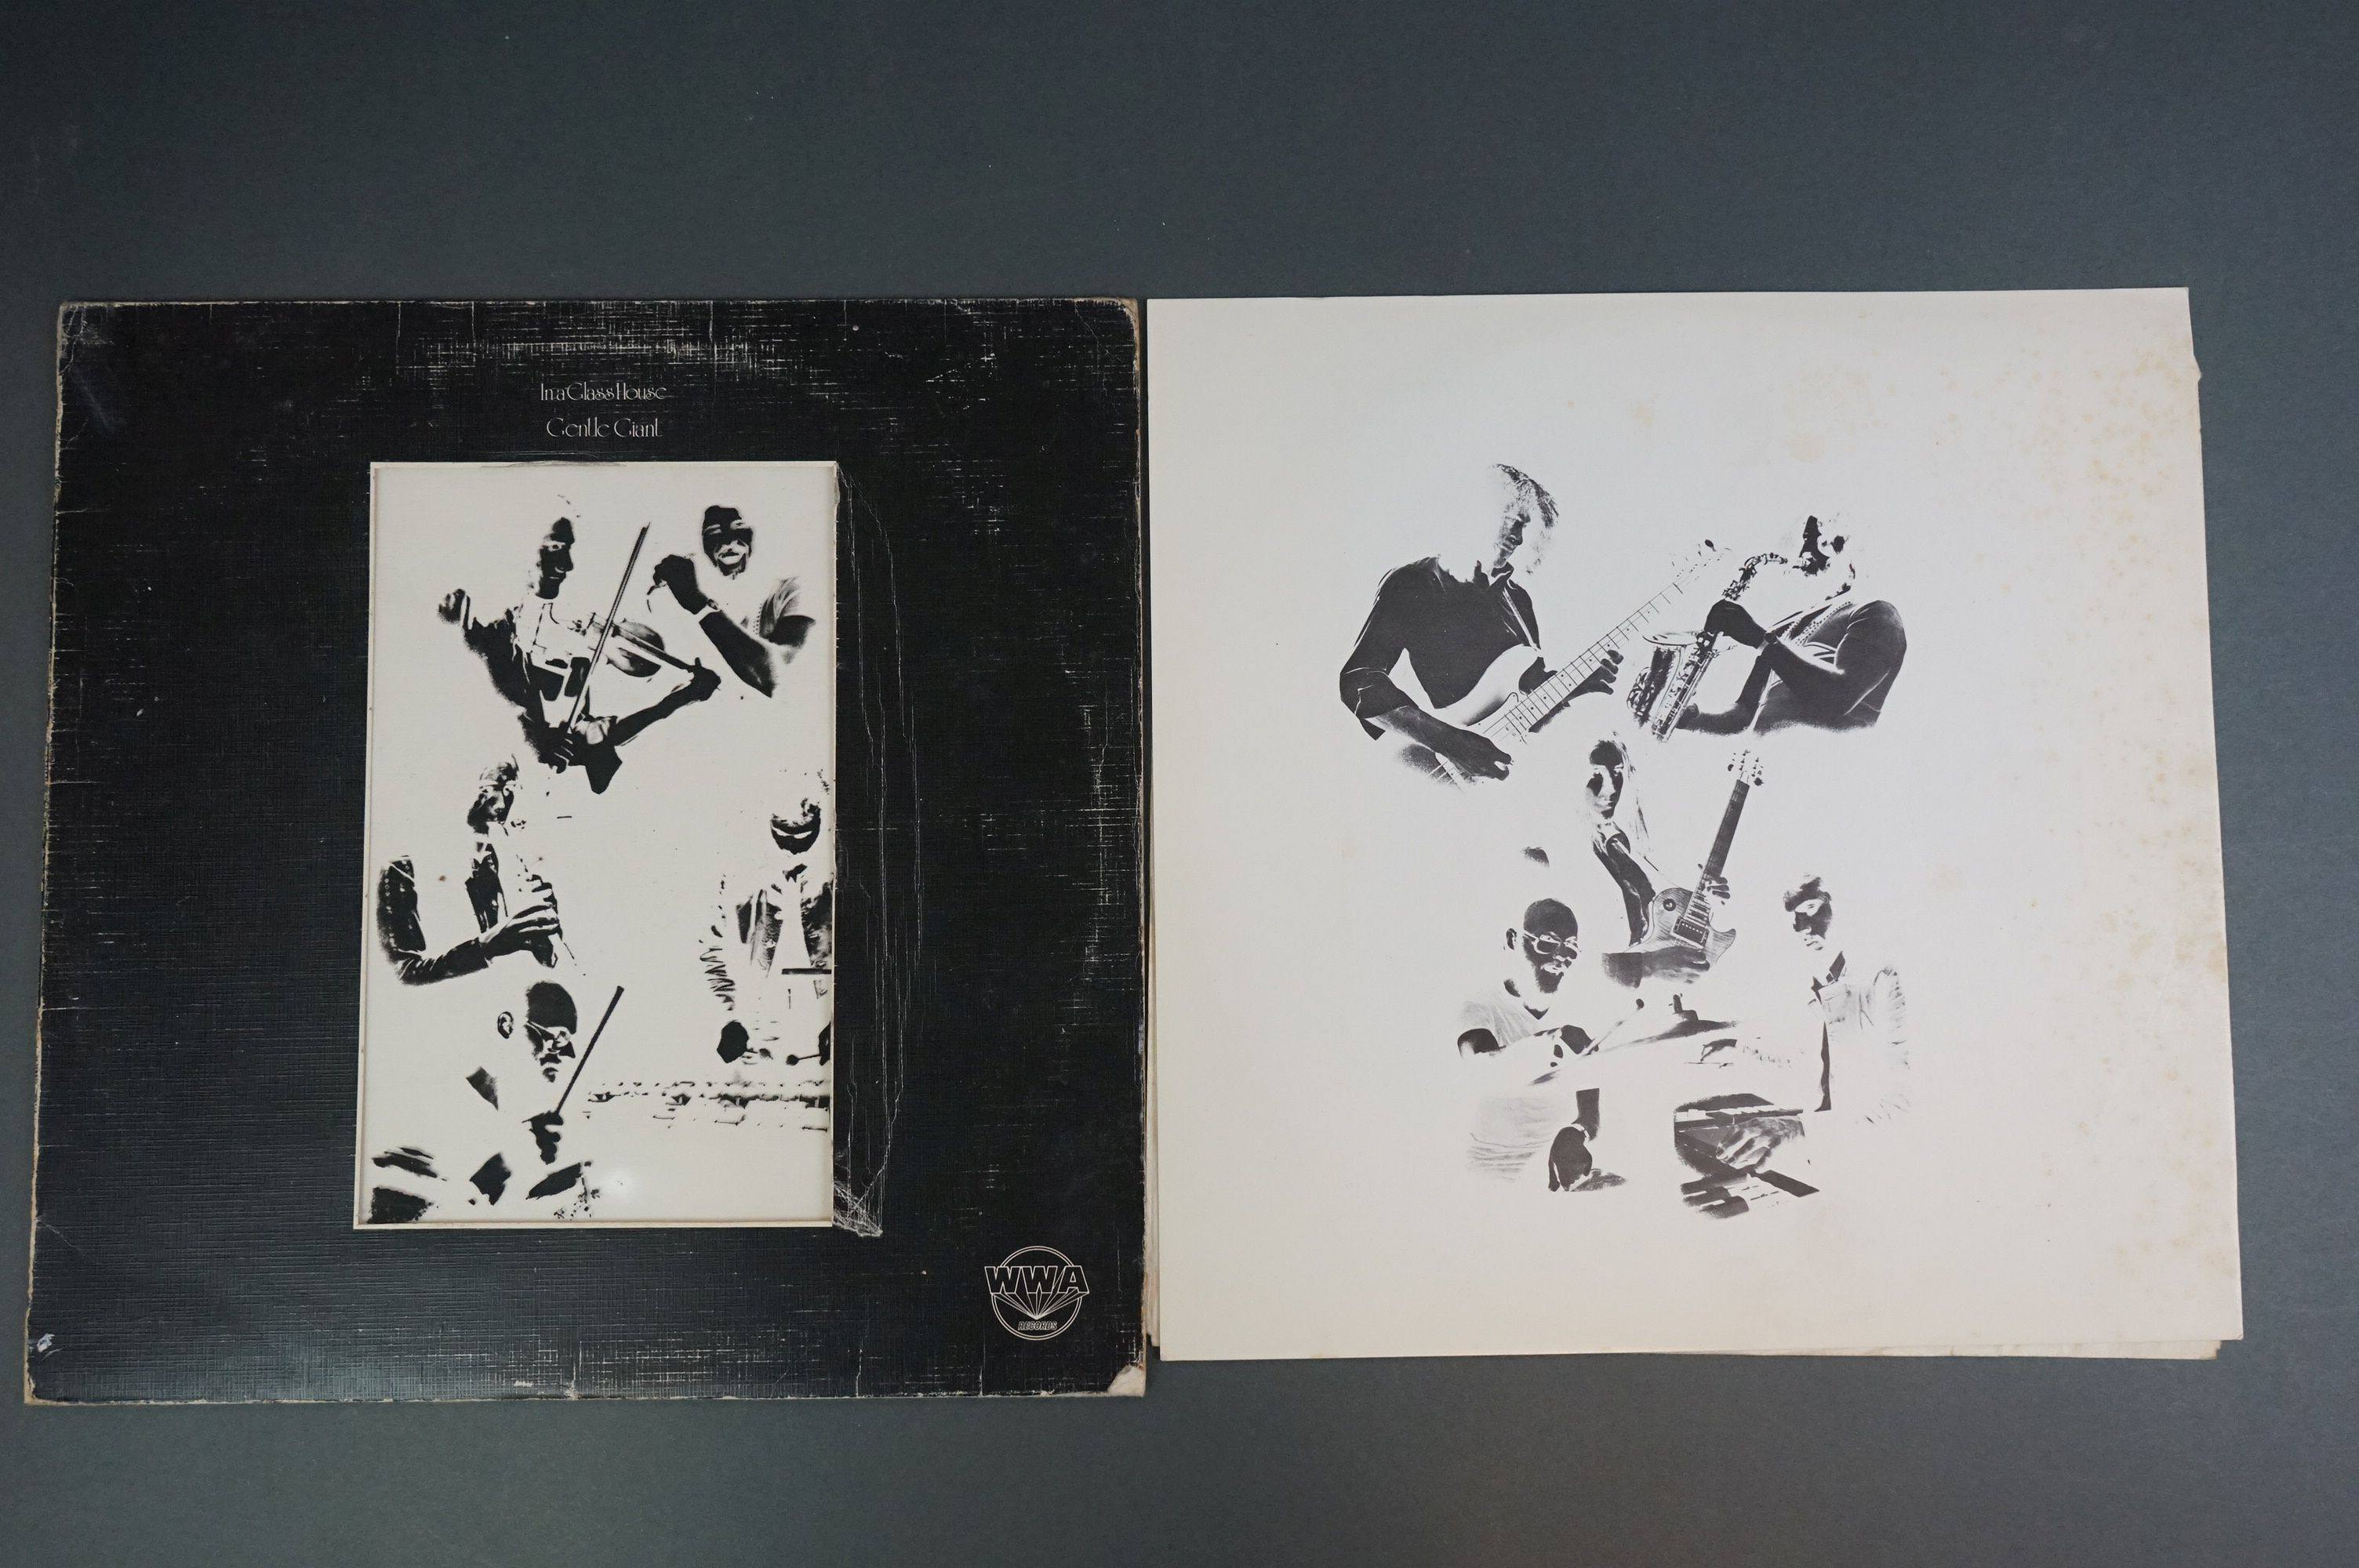 Vinyl - Two Gentle Giant LPs to include In A Glasshouse WWA002 Photograph card and printed inners, - Image 3 of 10